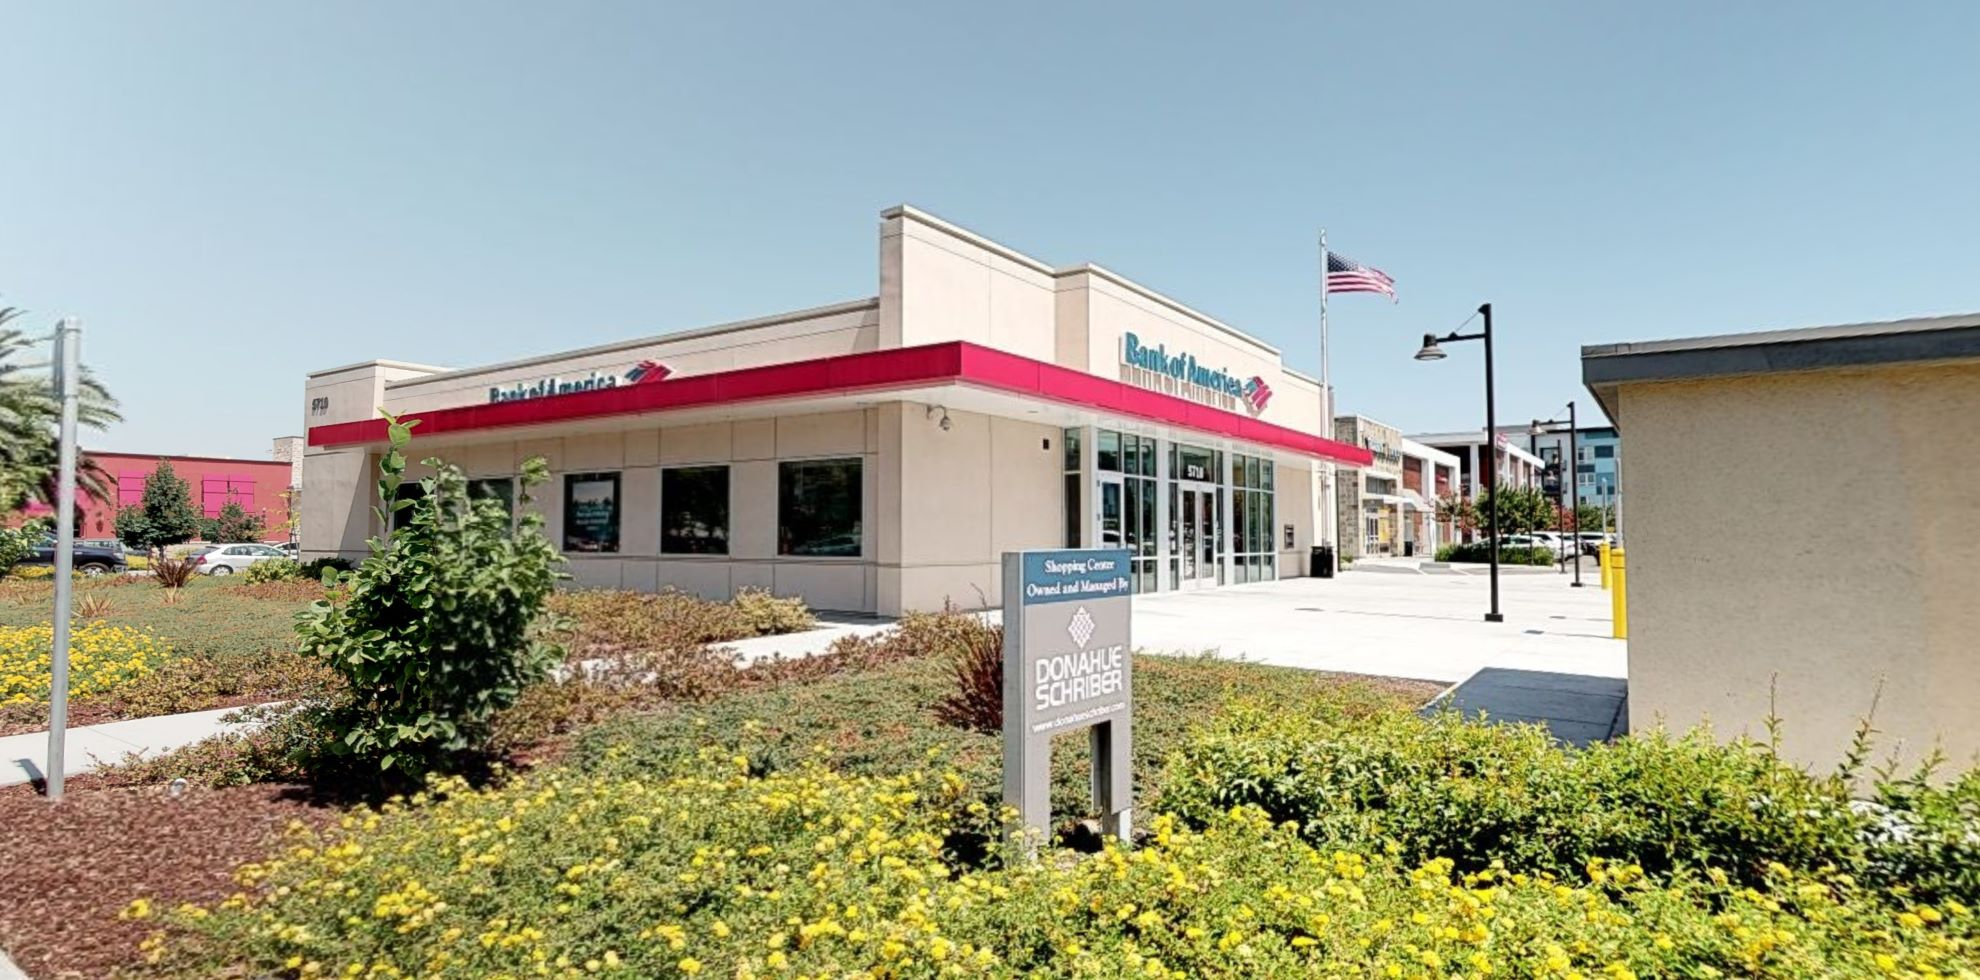 Bank of America financial center with walk-up ATM   5710 Cottle Rd, San Jose, CA 95123